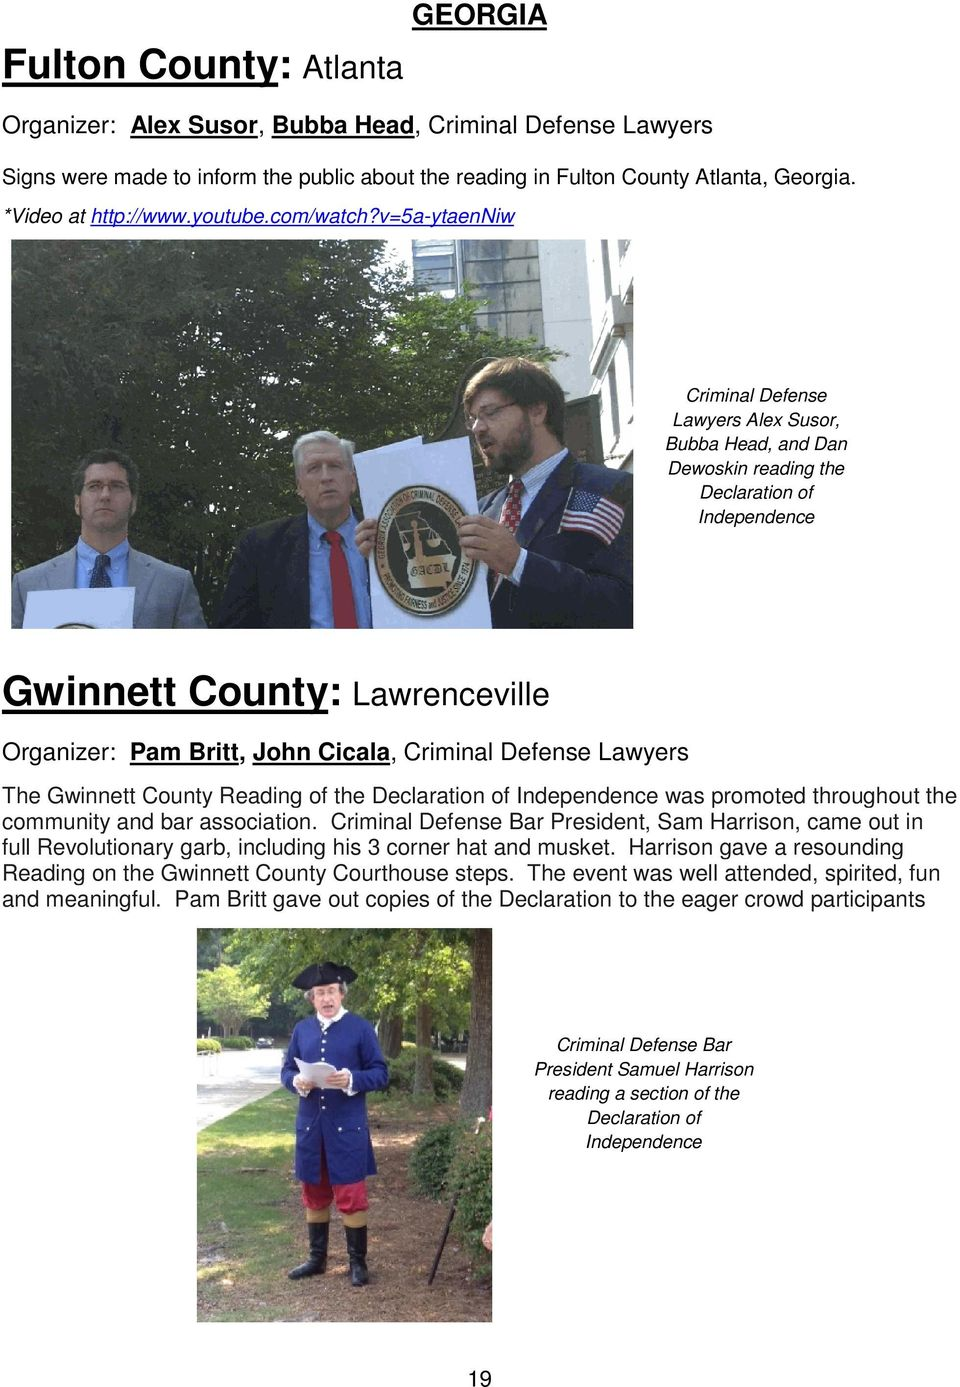 v=5a-ytaenniw Criminal Defense Lawyers Alex Susor, Bubba Head, and Dan Dewoskin reading the Declaration of Independence Gwinnett County: Lawrenceville Organizer: Pam Britt, John Cicala, Criminal